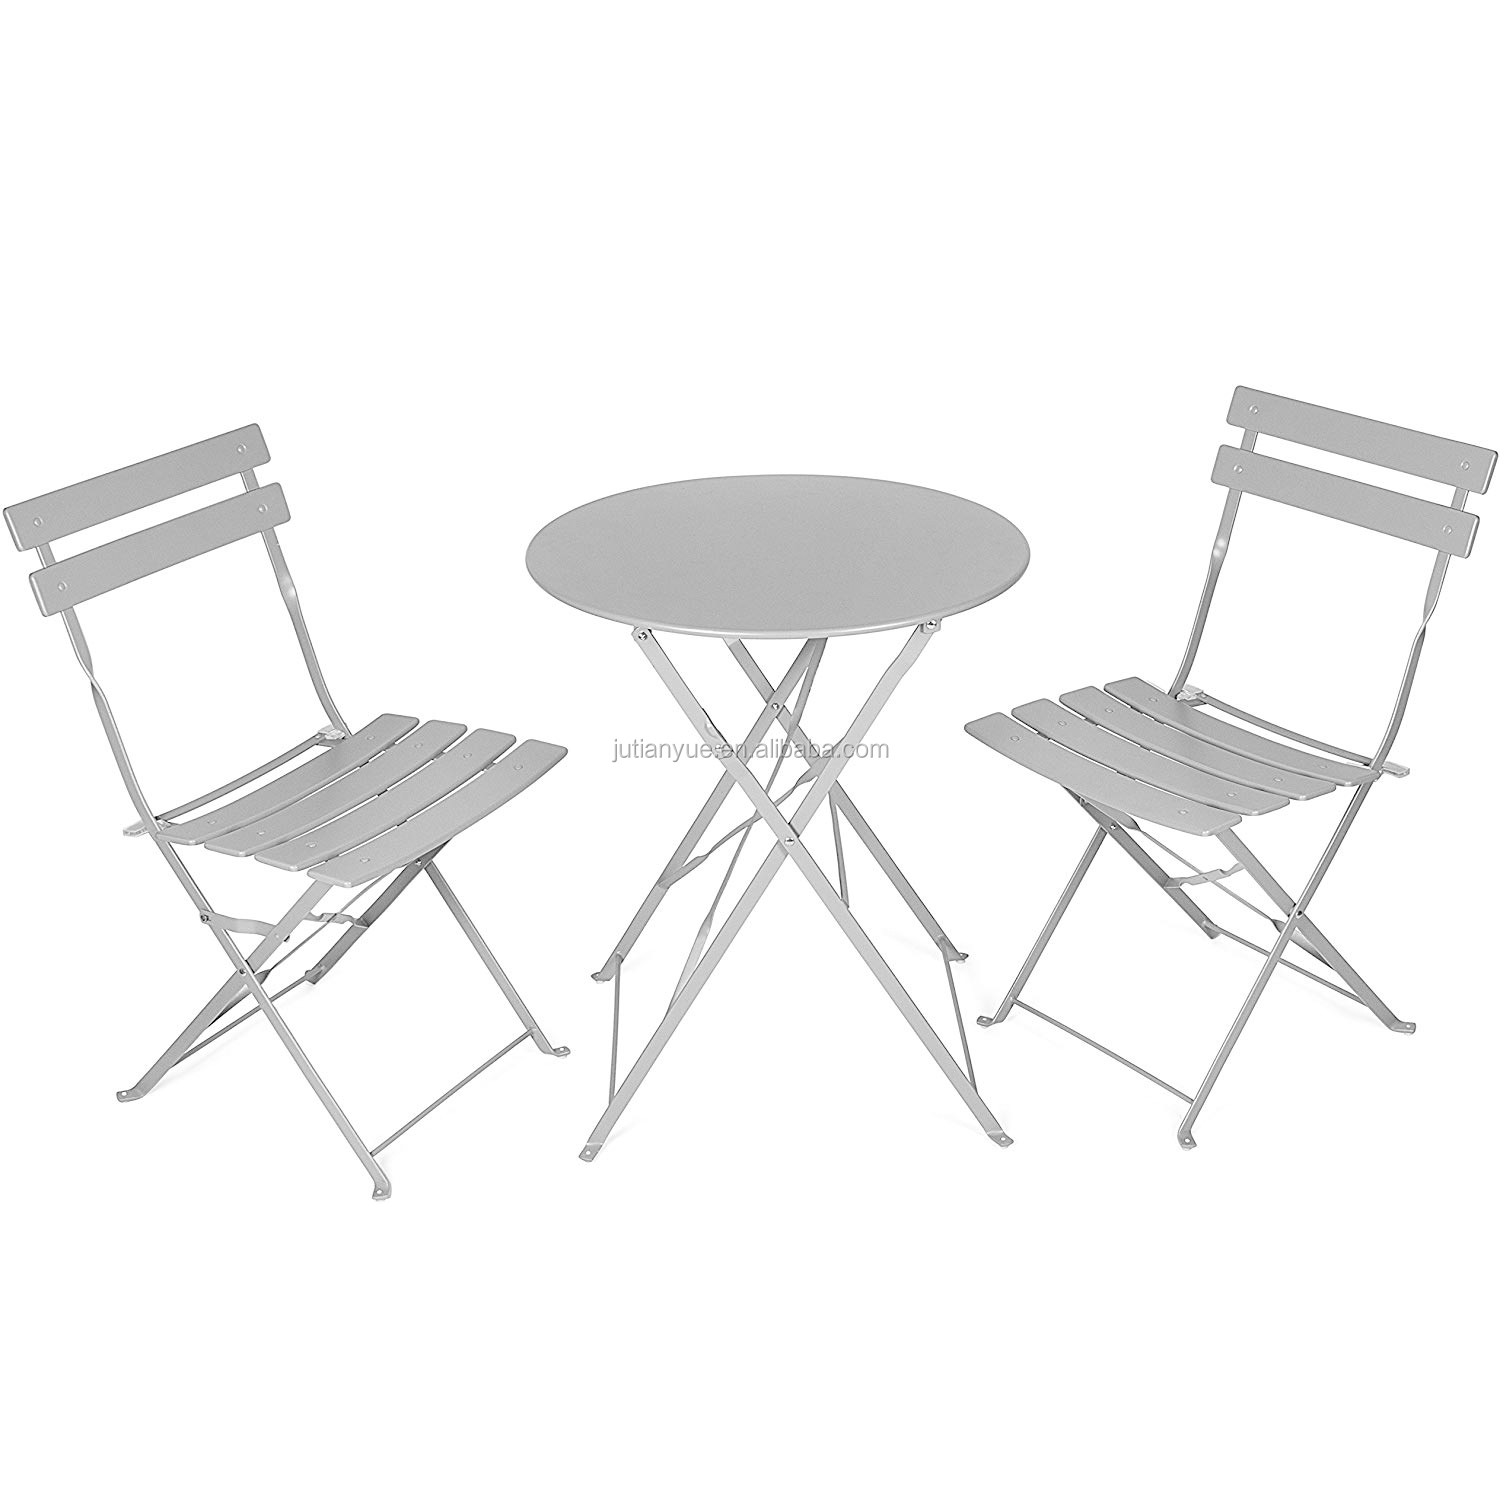 patio metal table and chairs wrought iron white outdoor bistro set buy metal outdoor garden chair and table balcony table and chairs sets metal